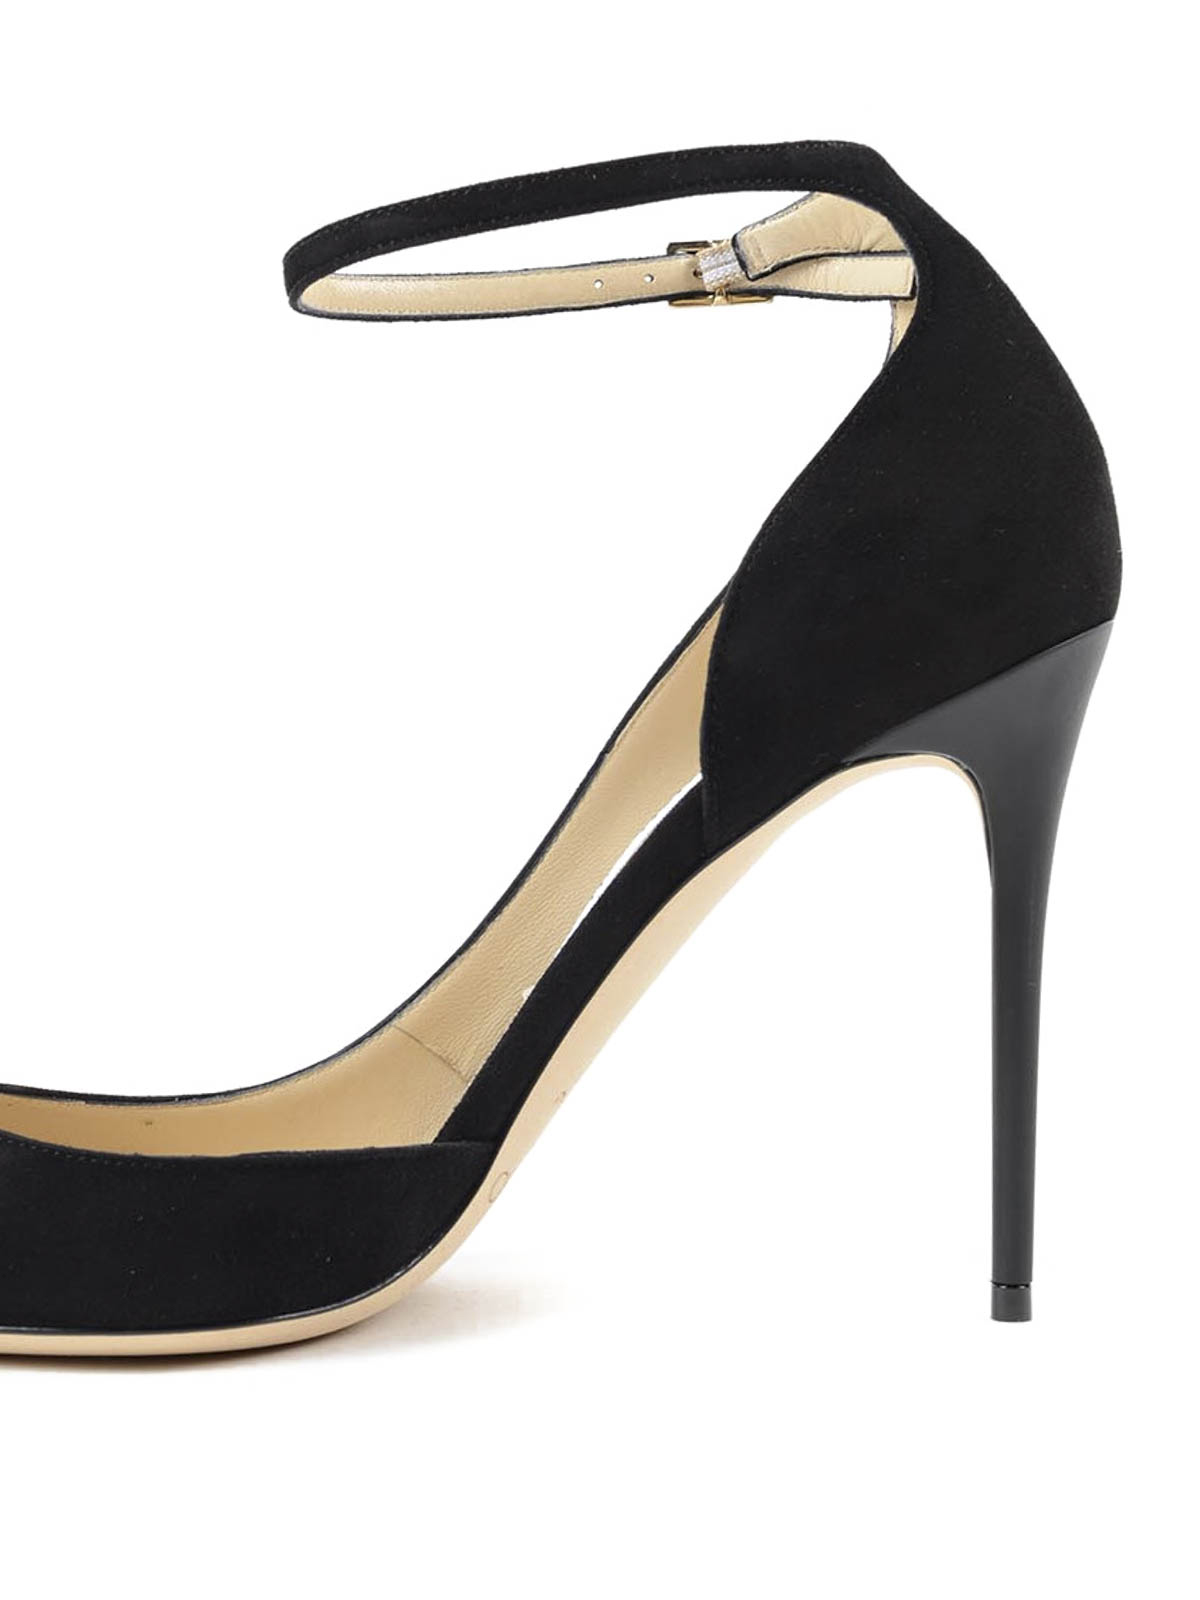 Jimmy choo Decollete pumps